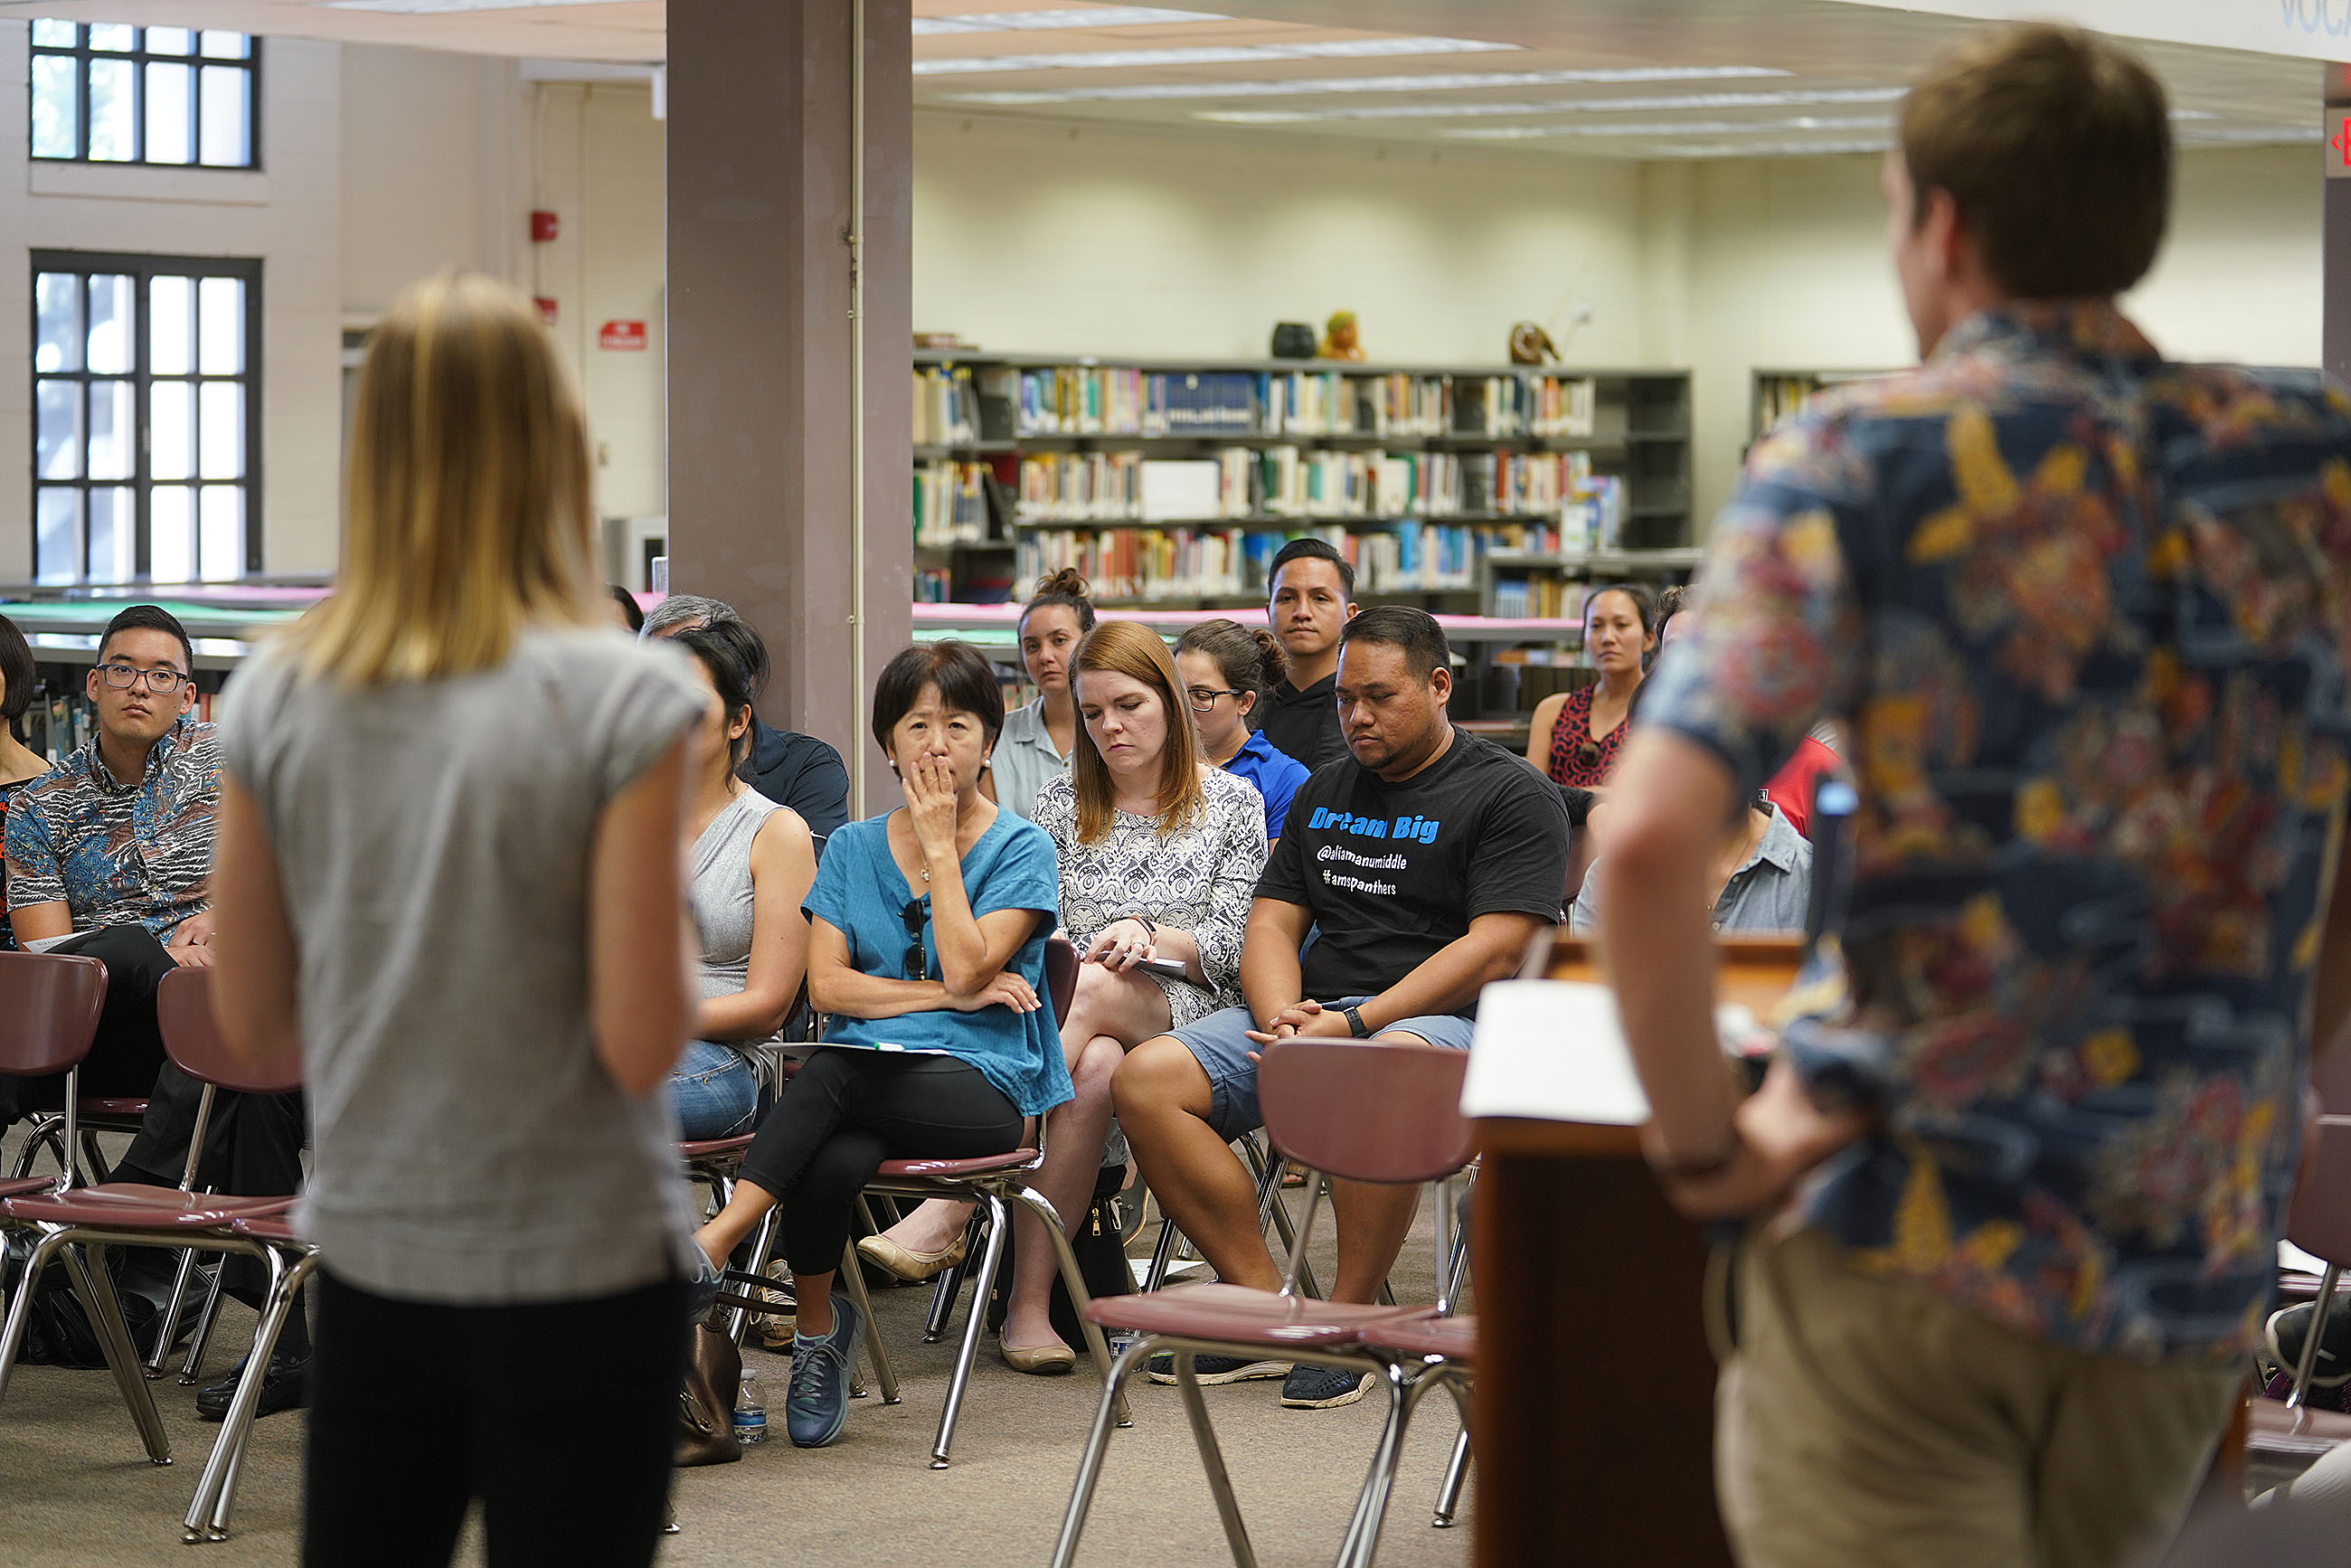 Ian Magruder from Landed with left, Alie Kelley answer questions by Oahu teachers at Farrington High School library.